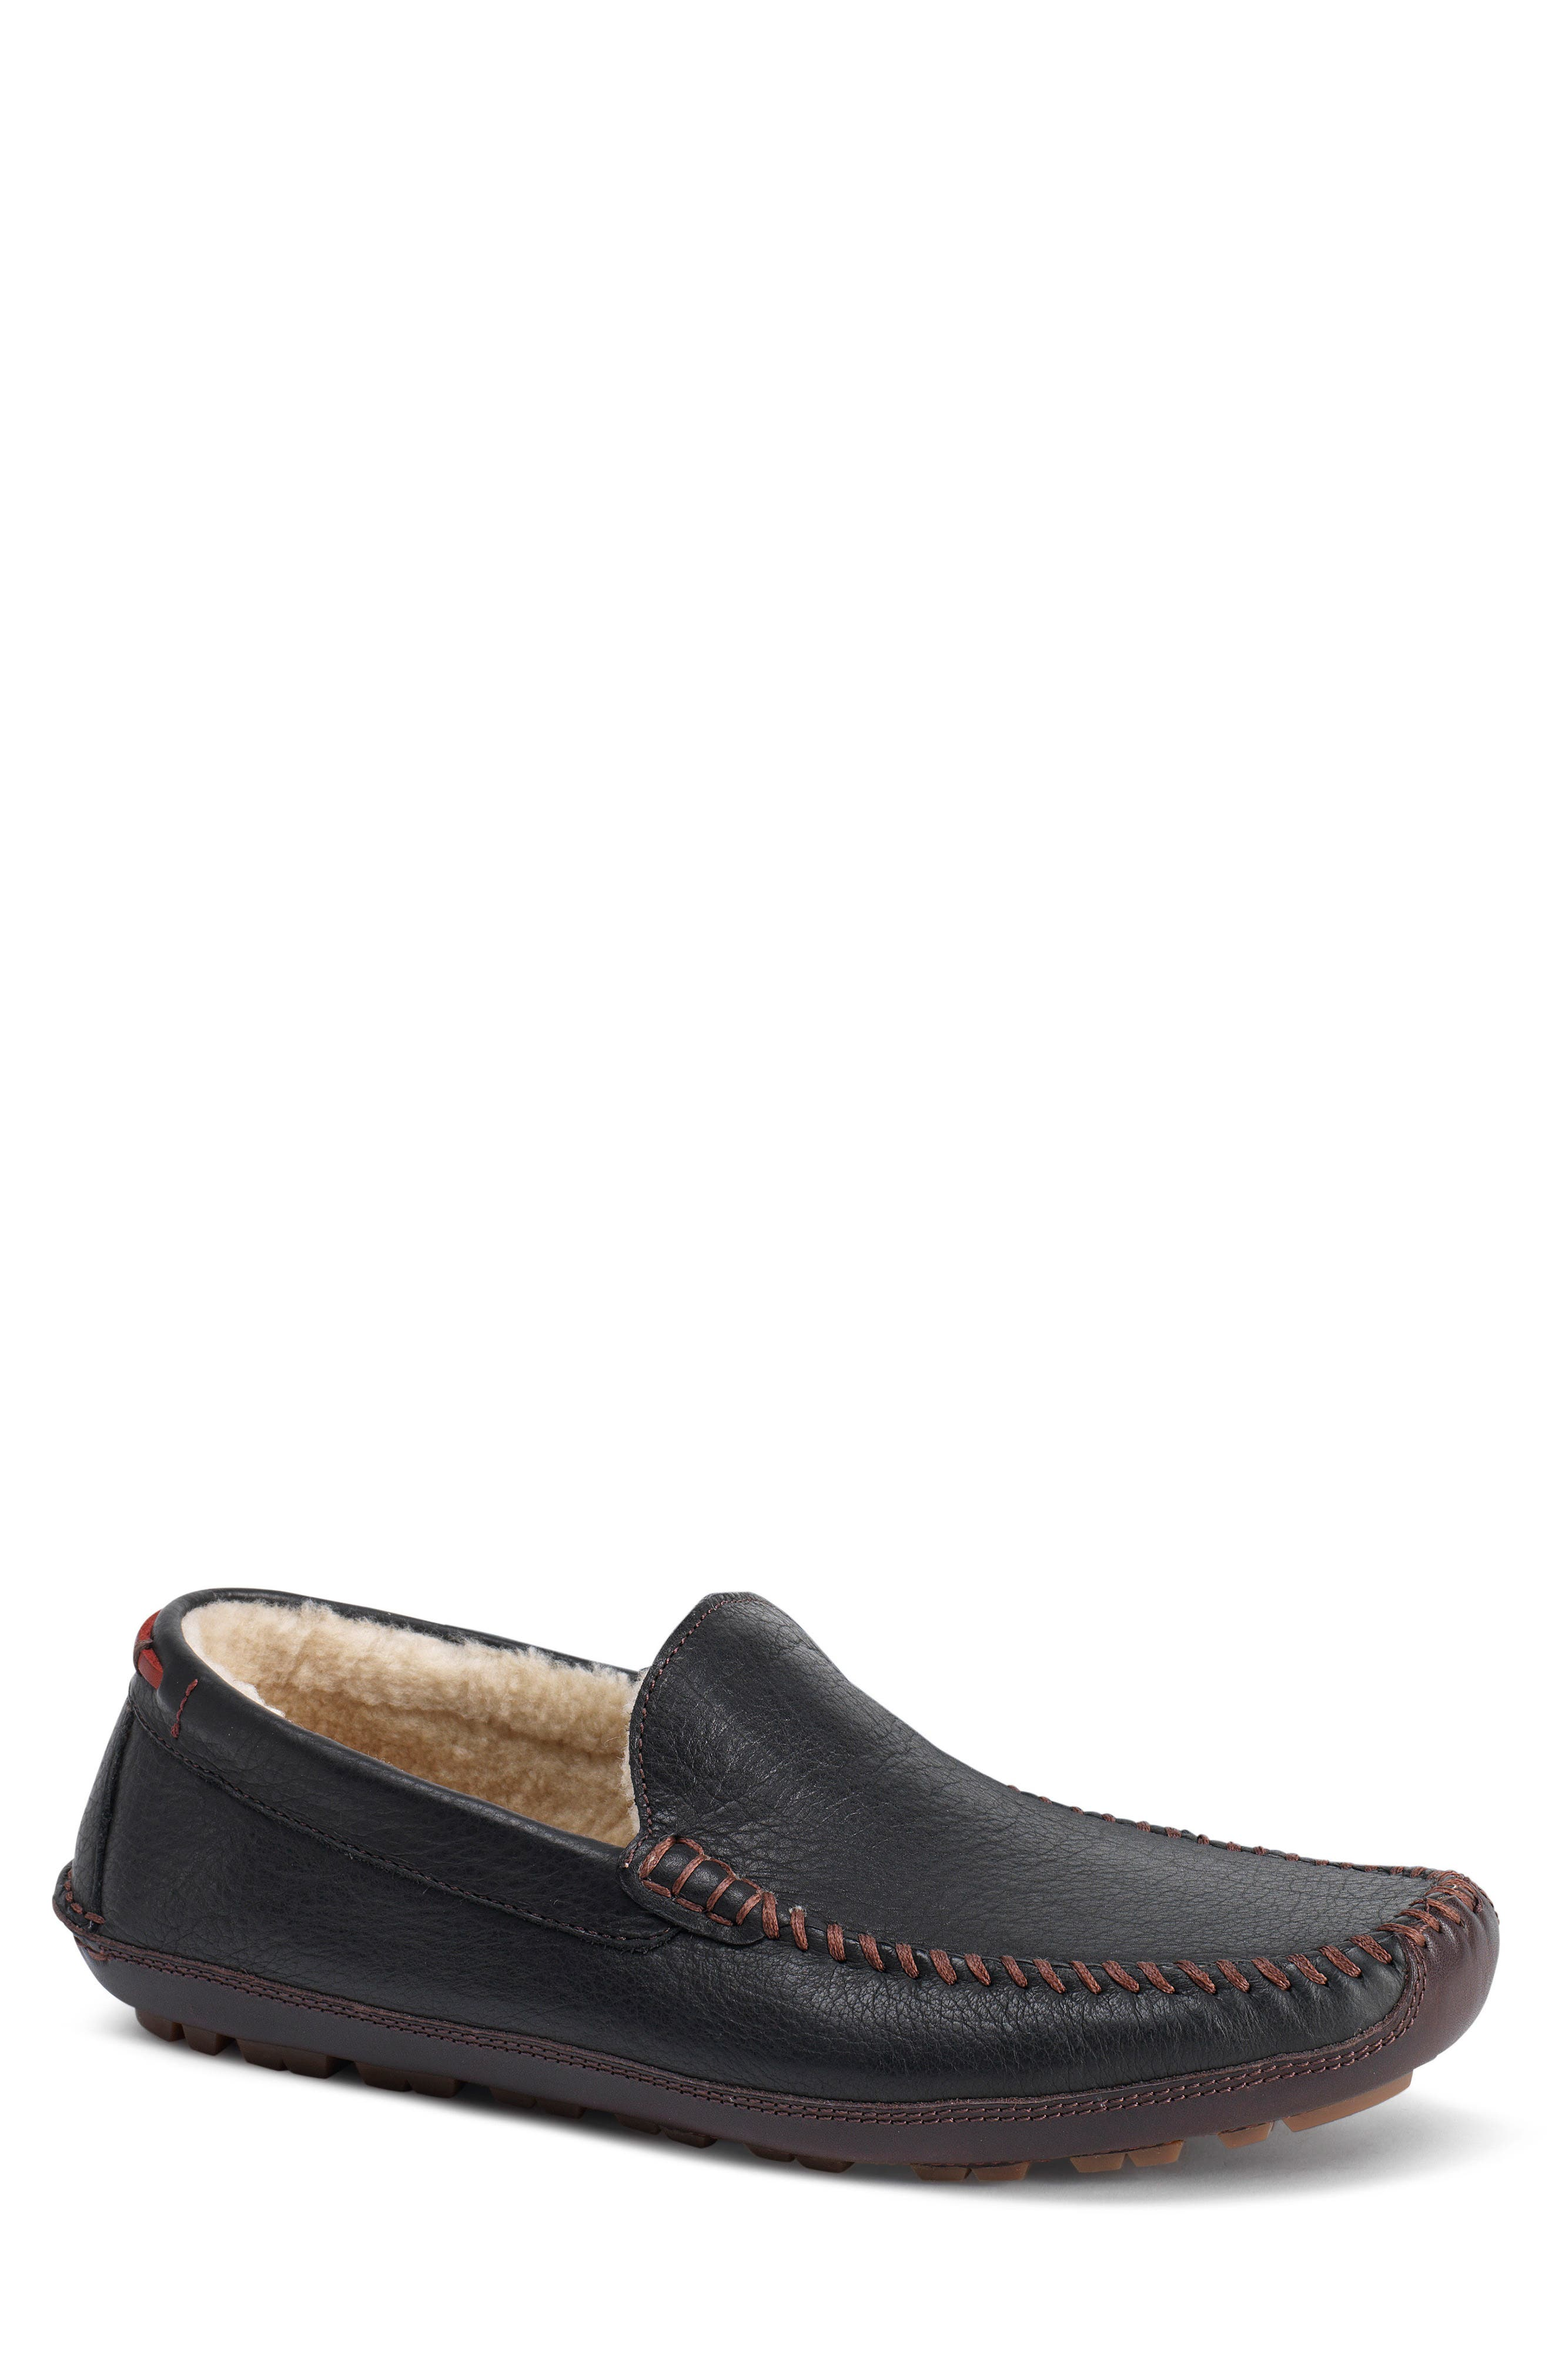 TRASK Denton Driving Shoe with Genuine Shearling, Main, color, BLACK LEATHER/ SHEARLING